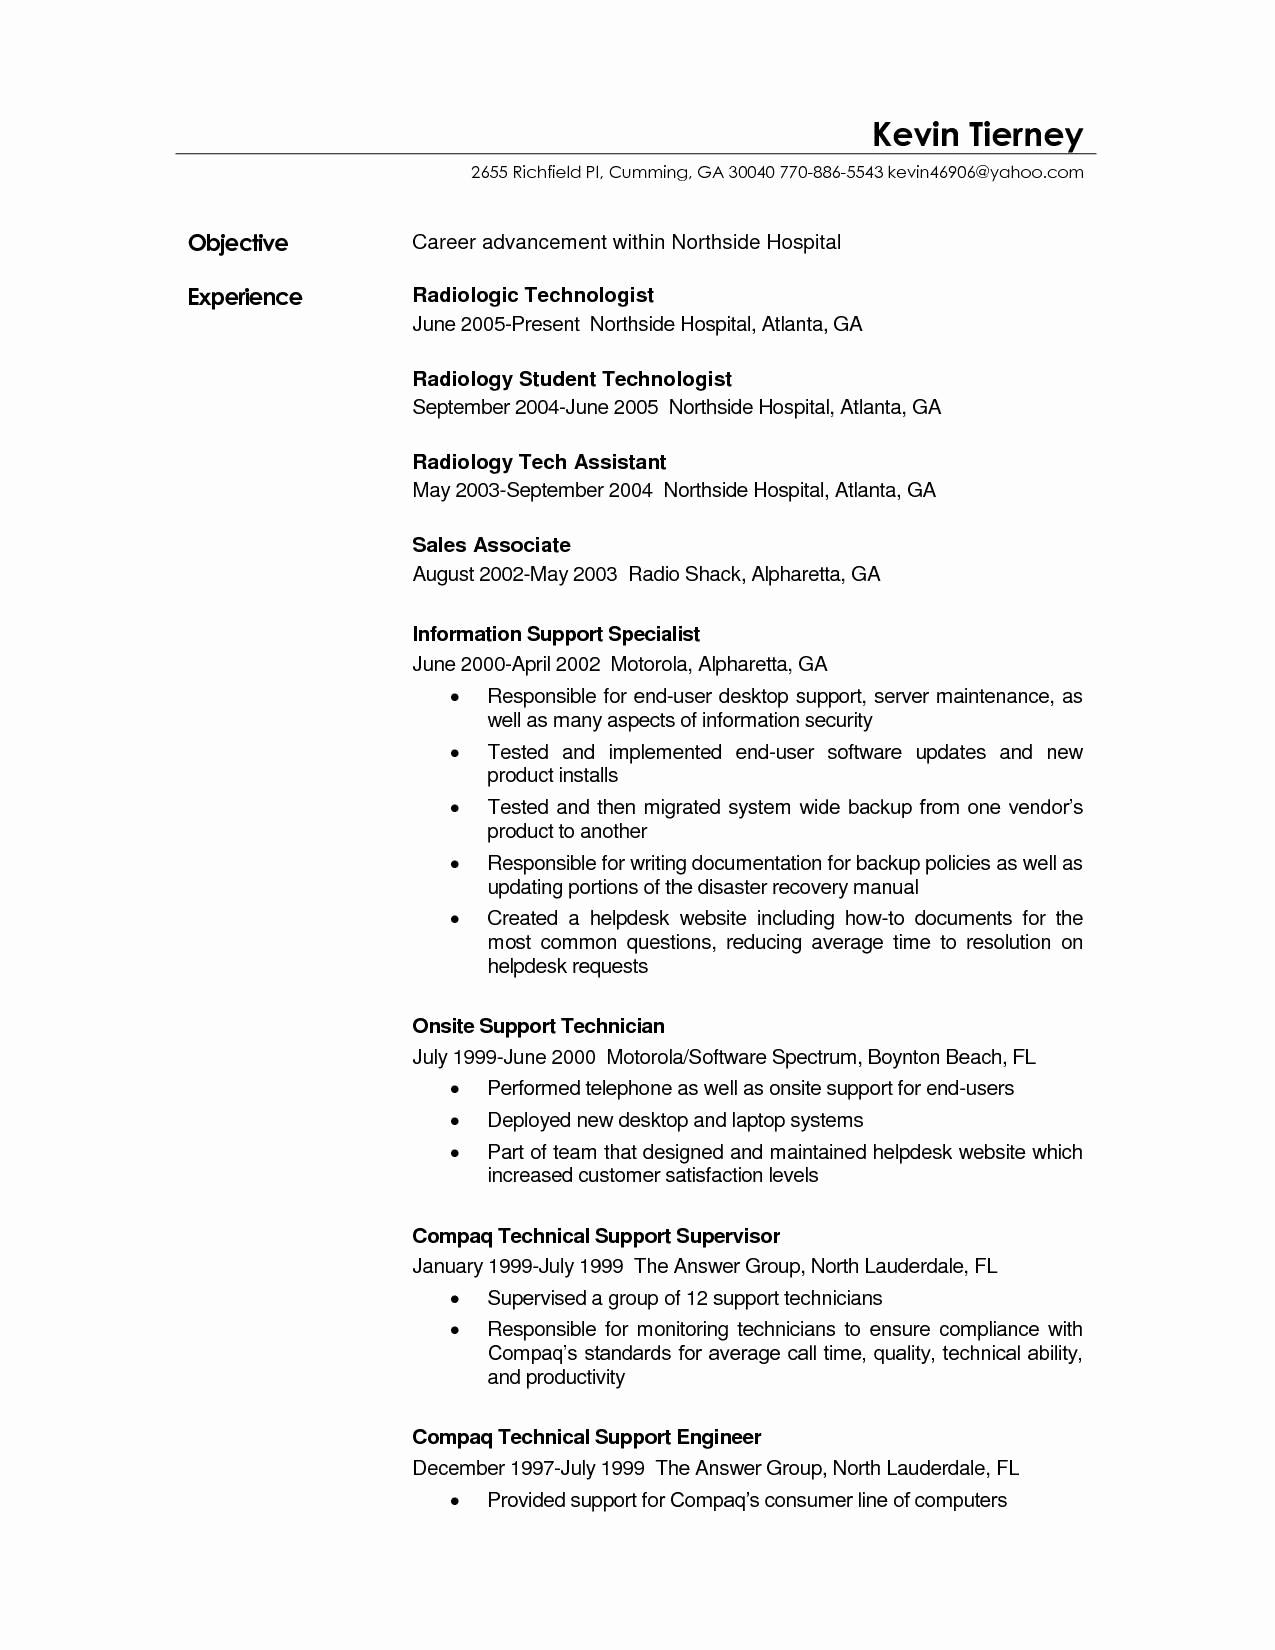 Tech Support Resume Template - 37 Fresh Surgical Tech Resume Sample Resume Templates Ideas 2018